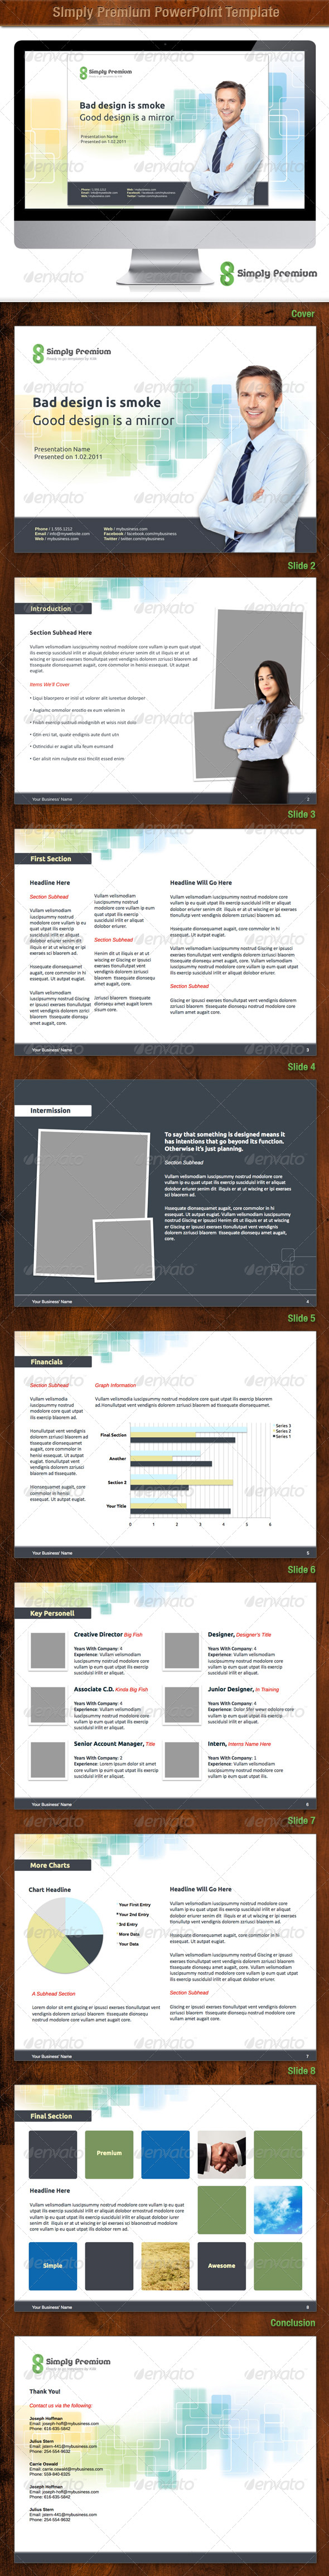 Simply Premium PowerPoint Template - Powerpoint Templates Presentation Templates